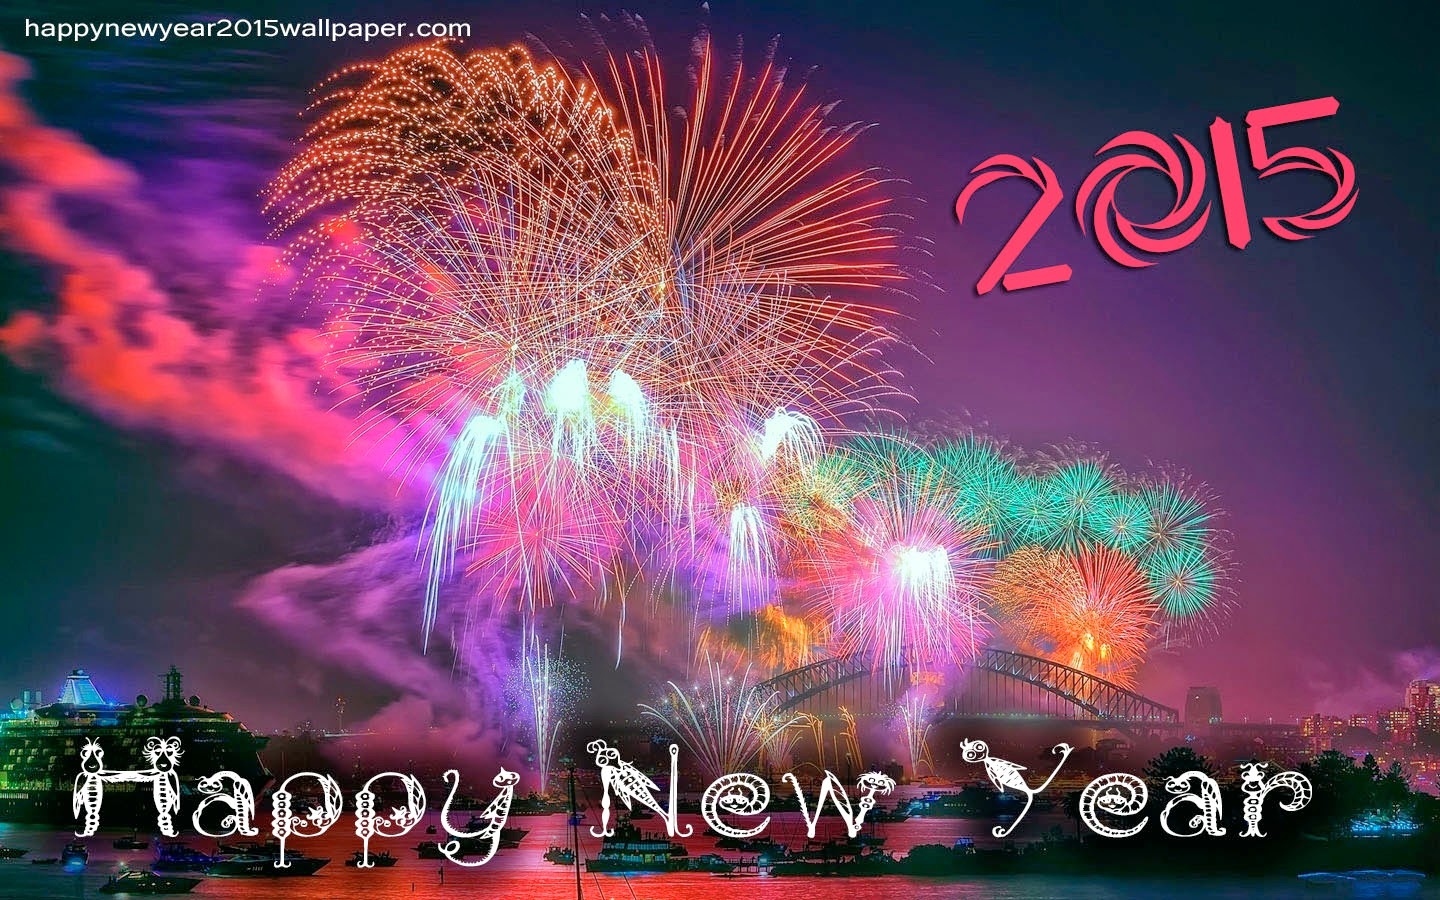 2016 happy new year wallpapers 2015   Grasscloth Wallpaper 1440x900